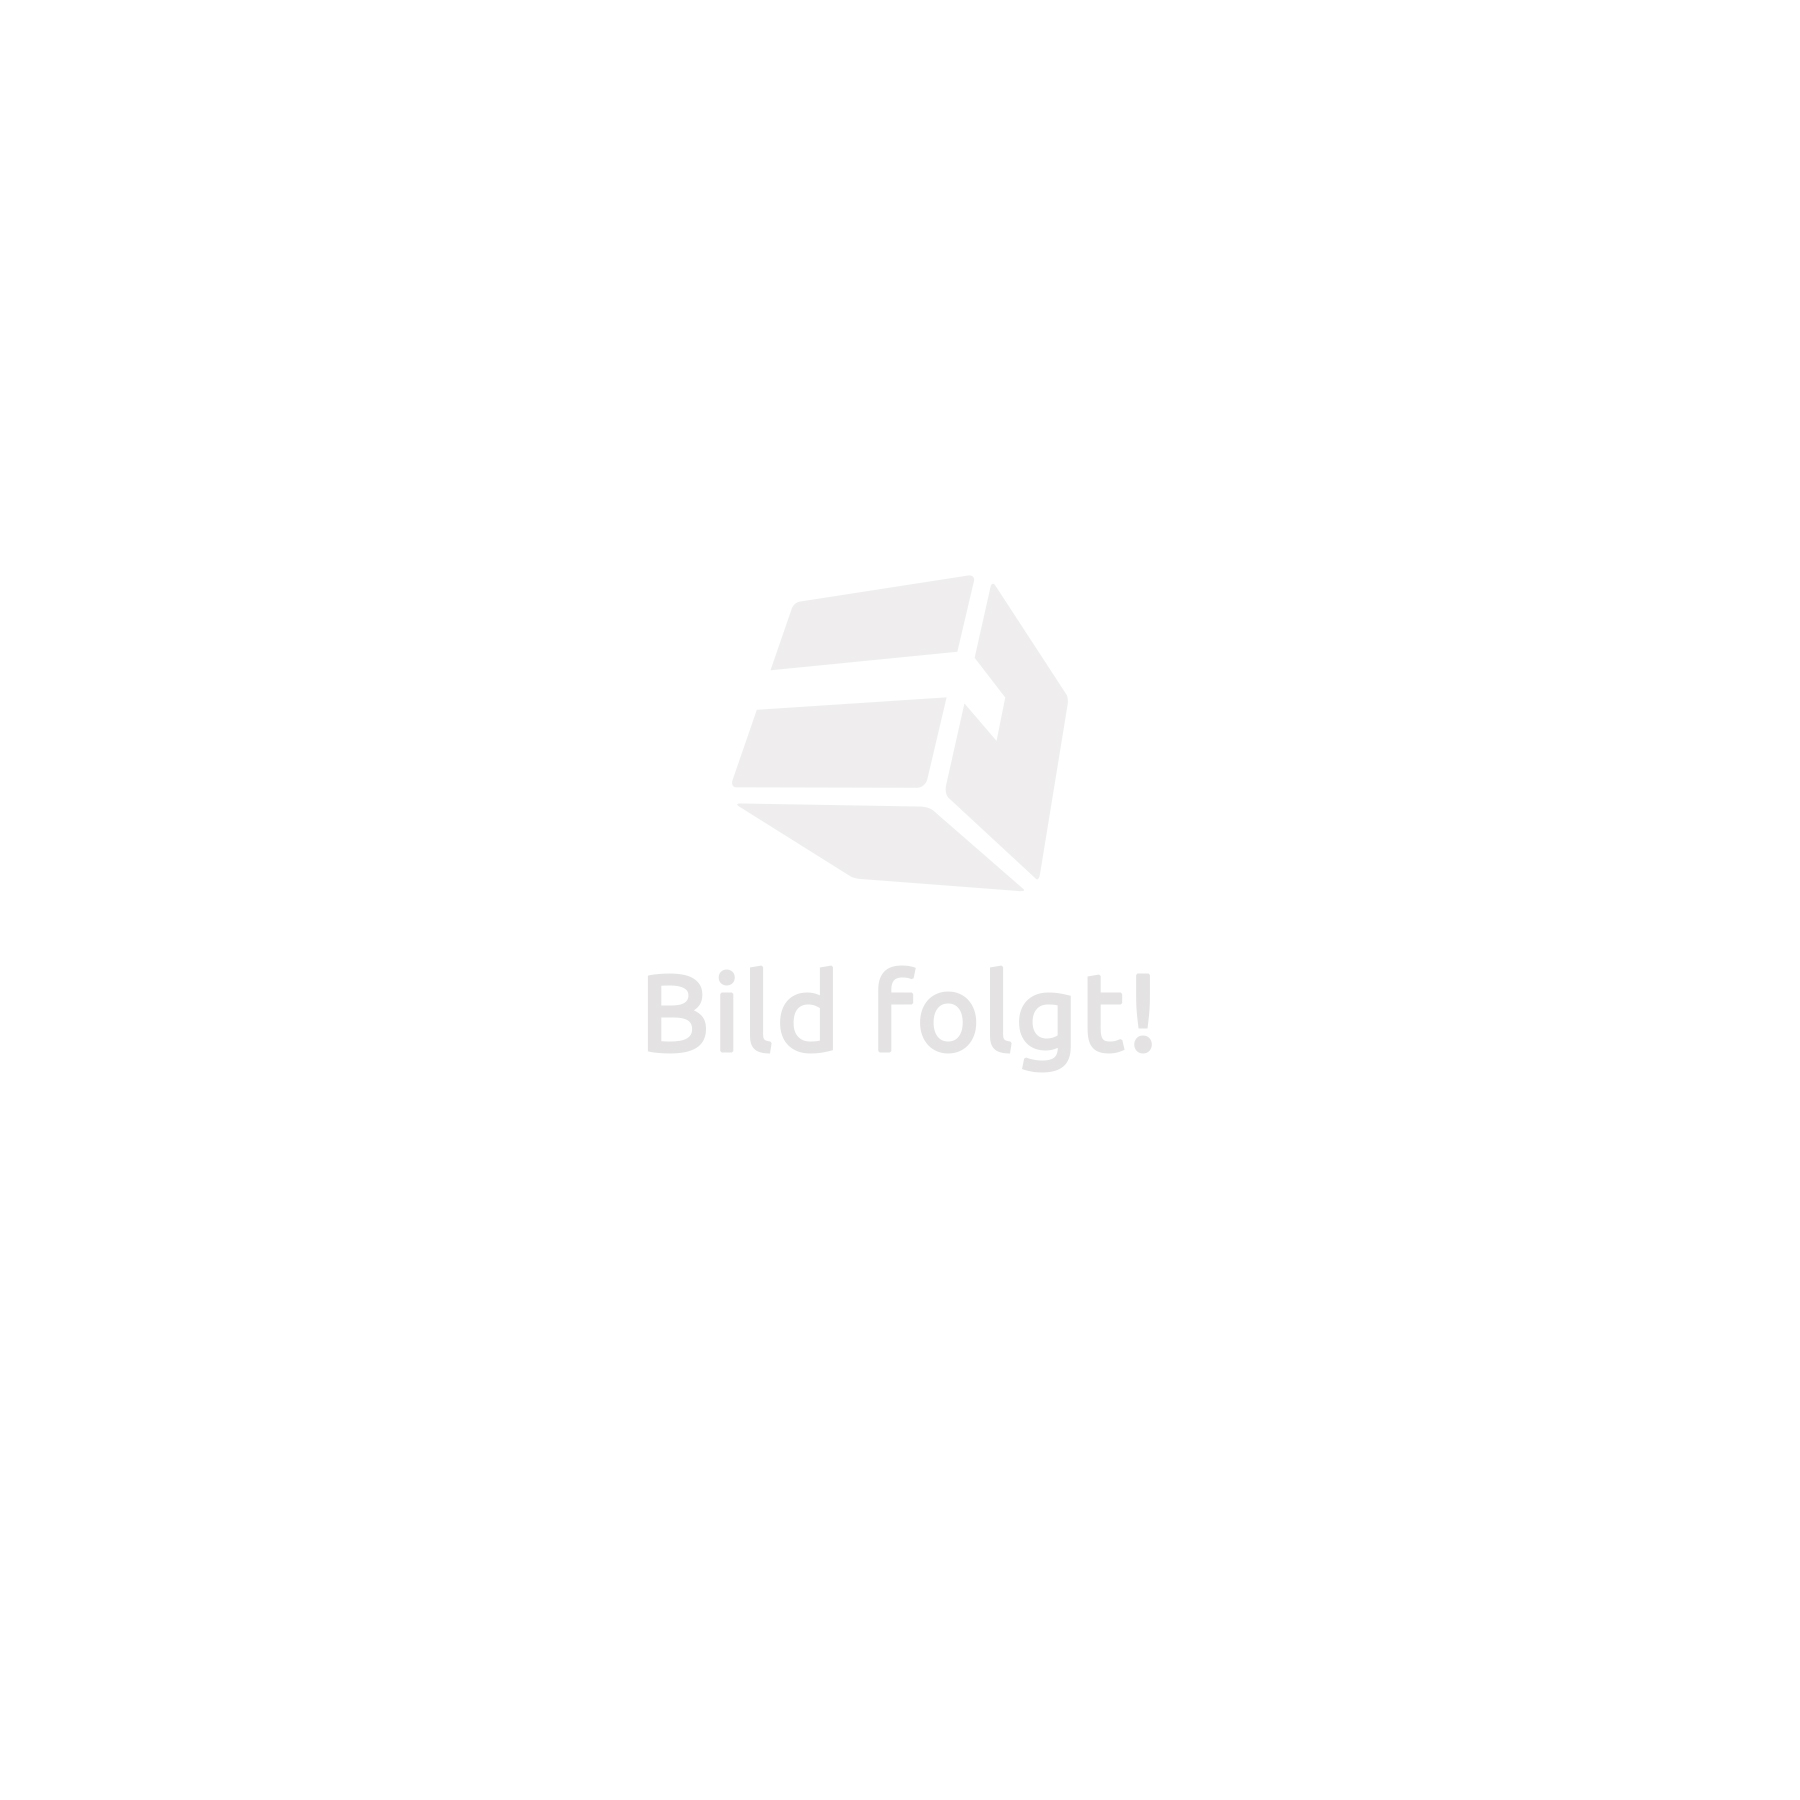 Fauteuil Relax TV avec Tabouret, Simili Cuir Inclinable